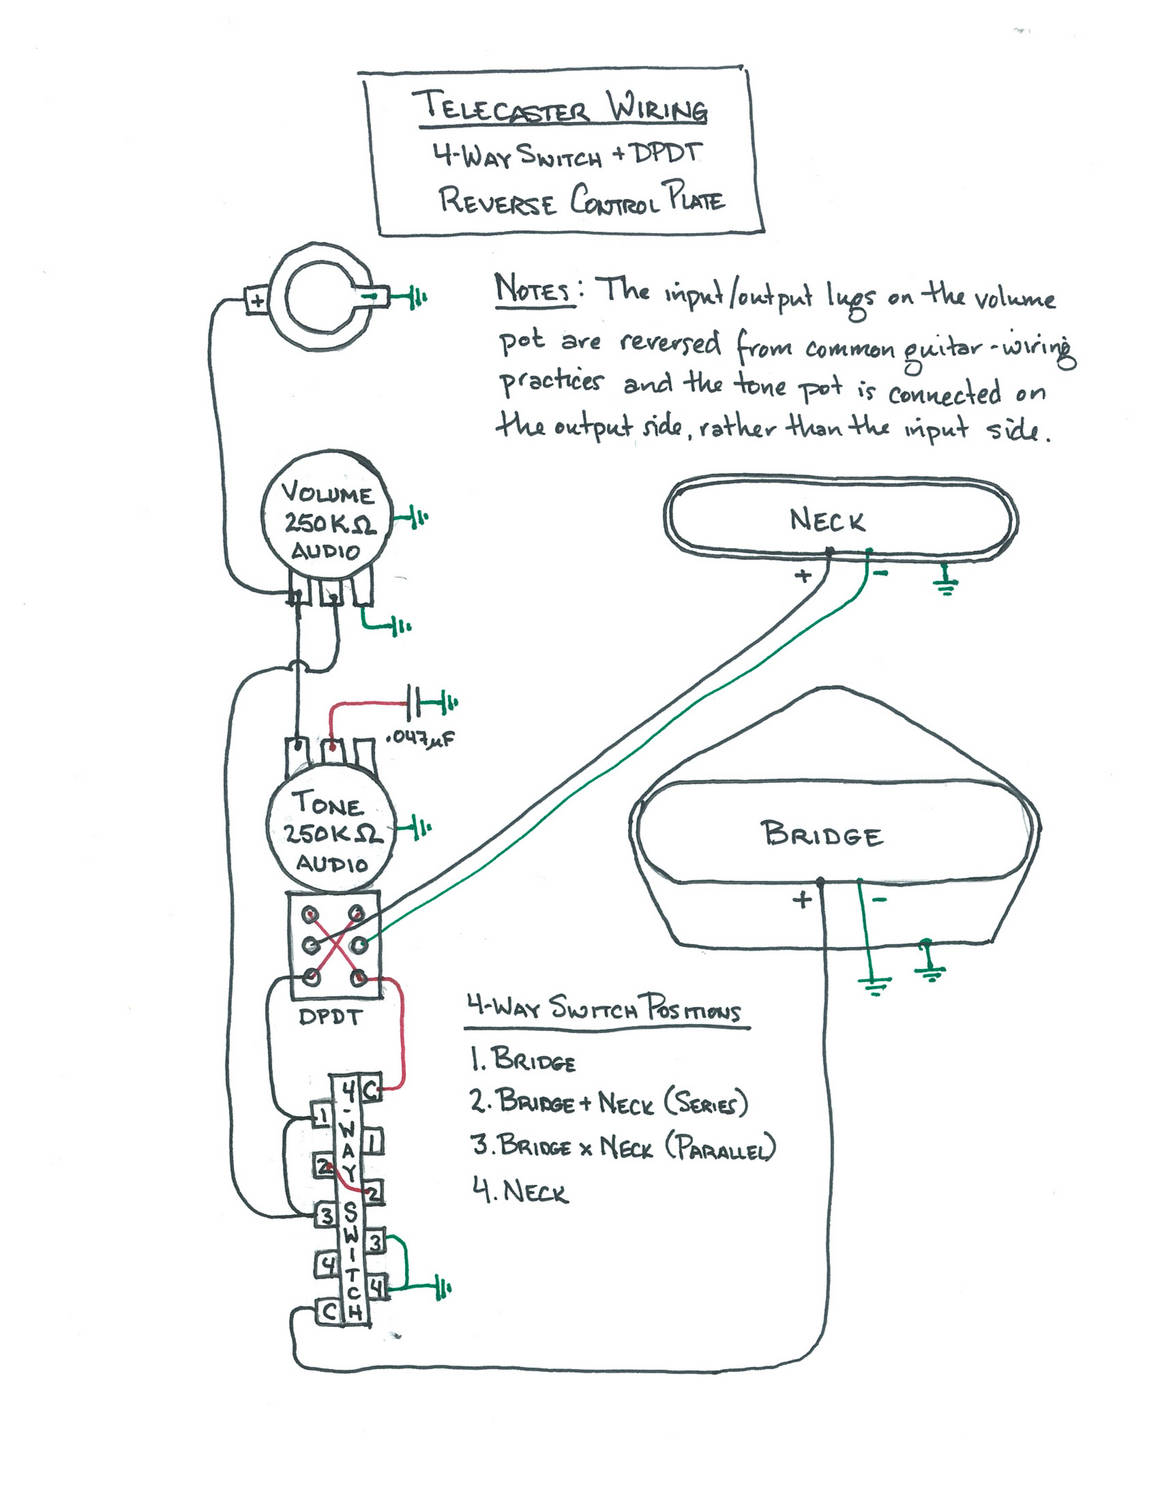 wiring diagram tele 4 way switch with dpdt reverse control plate [ 1162 x 1500 Pixel ]